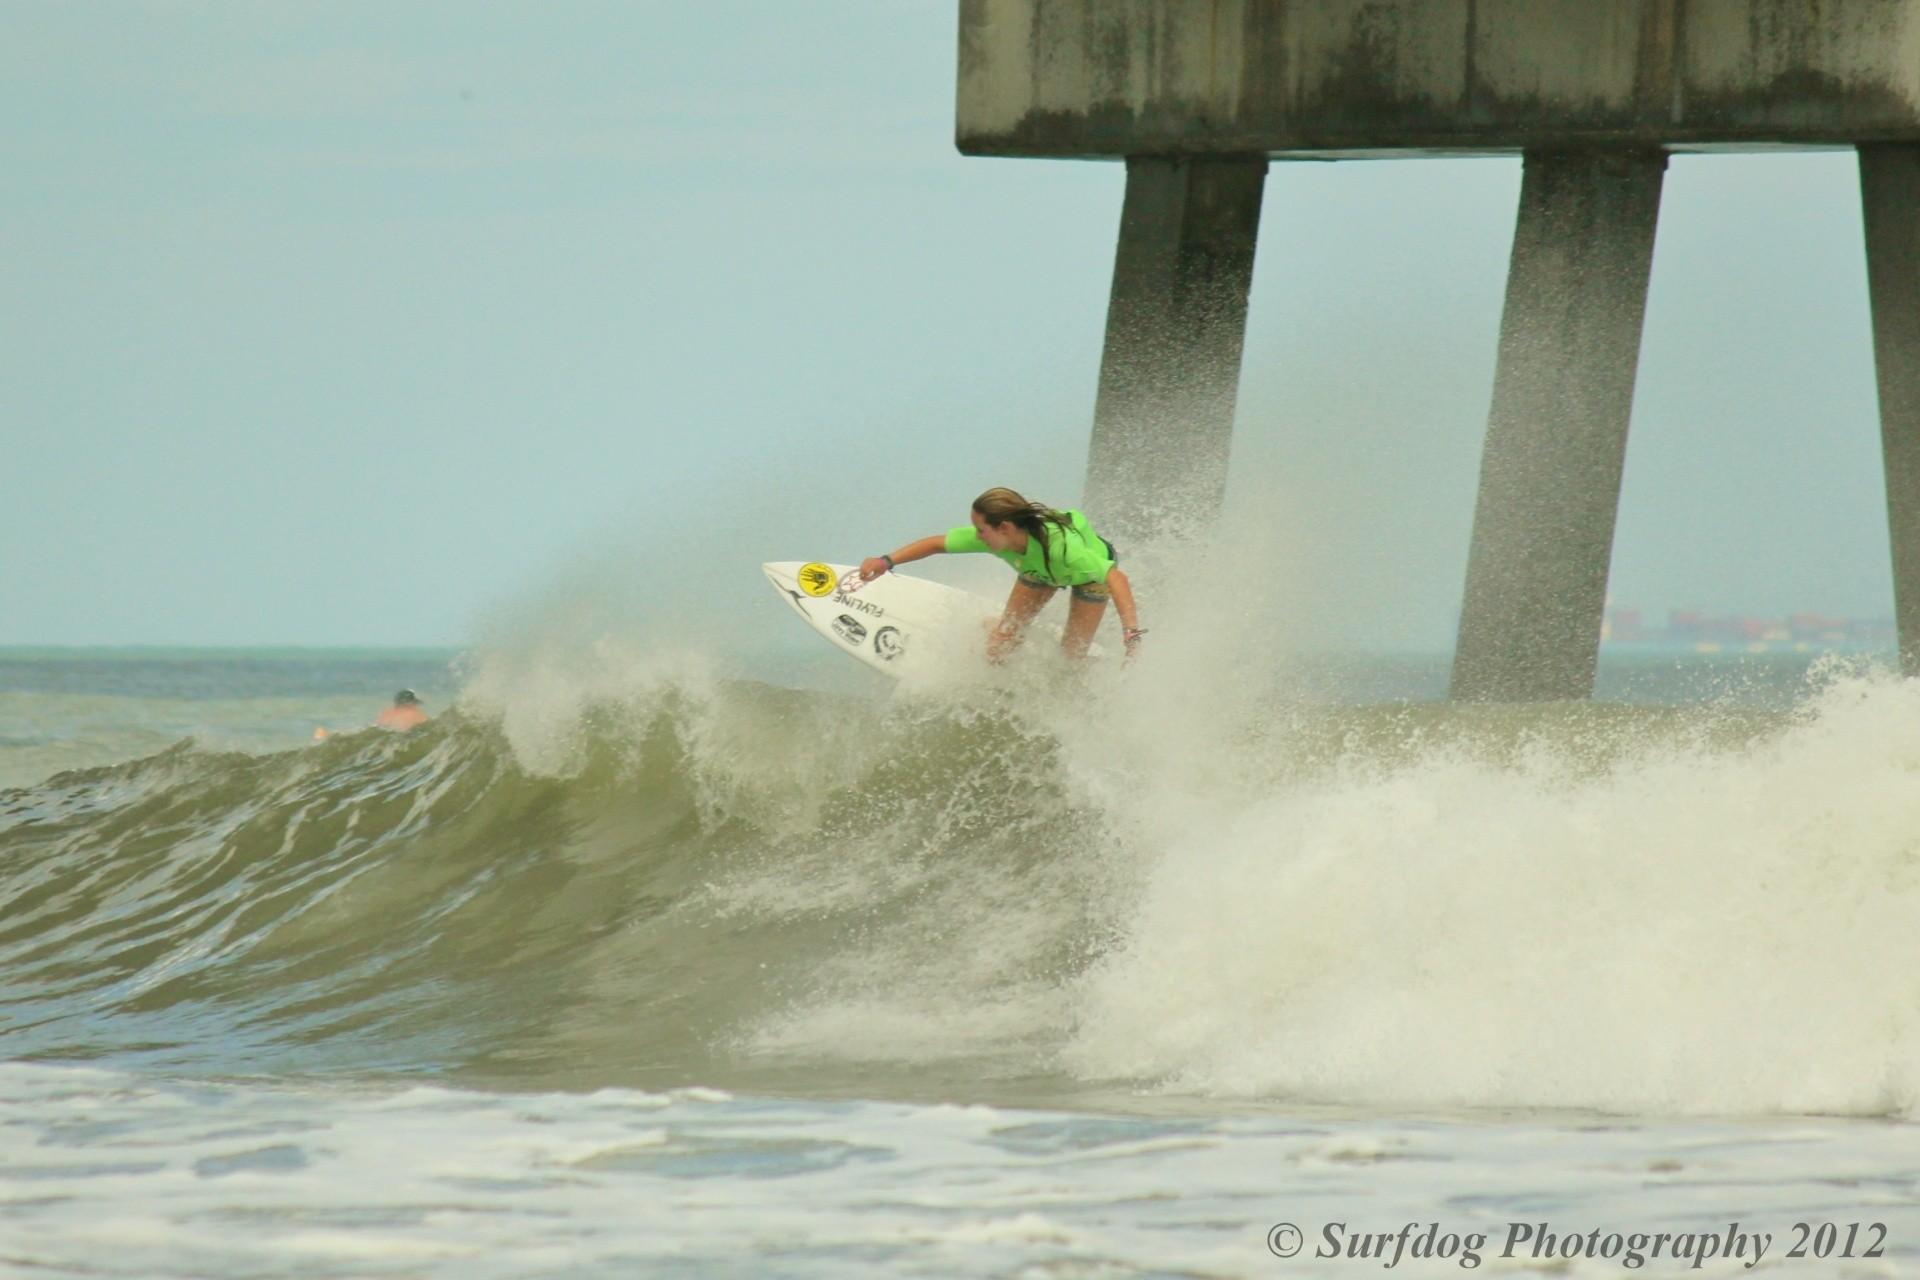 surfdog photography's photo of Jacksonville Beach